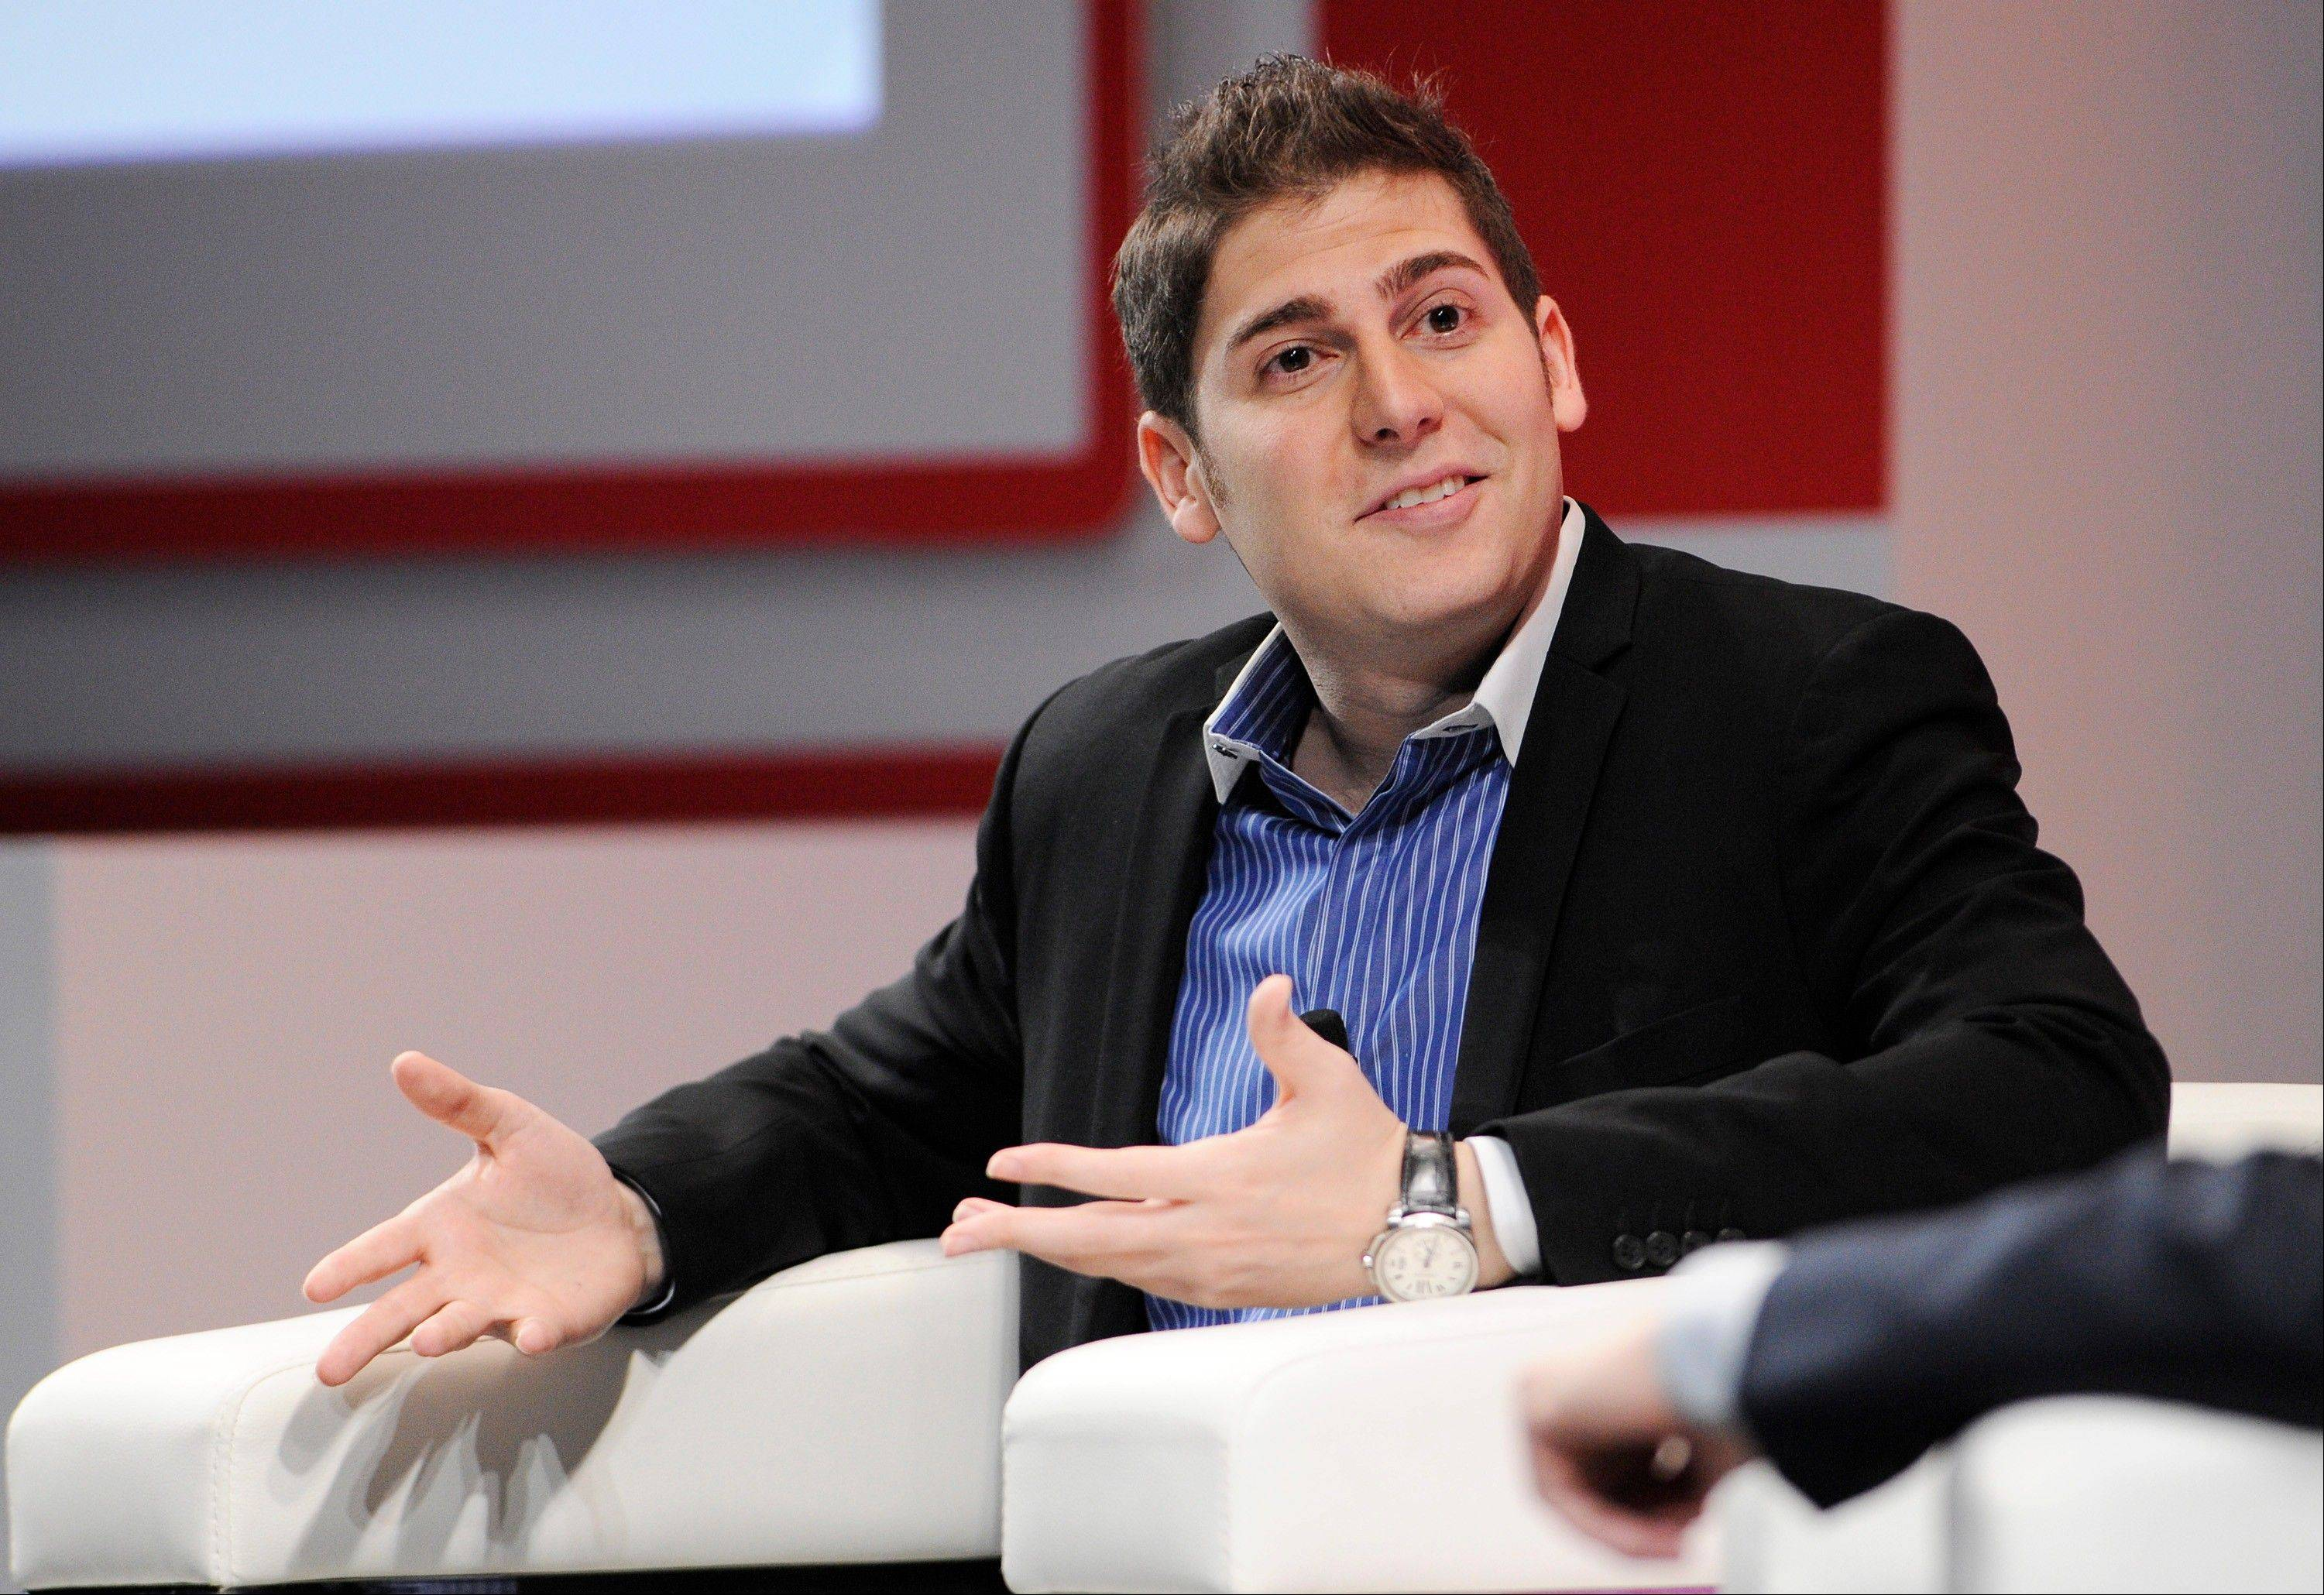 Eduardo Saverin, co-founder of Facebook Inc., speaks during a Wall Street Journal event in Singapore last Thursday.